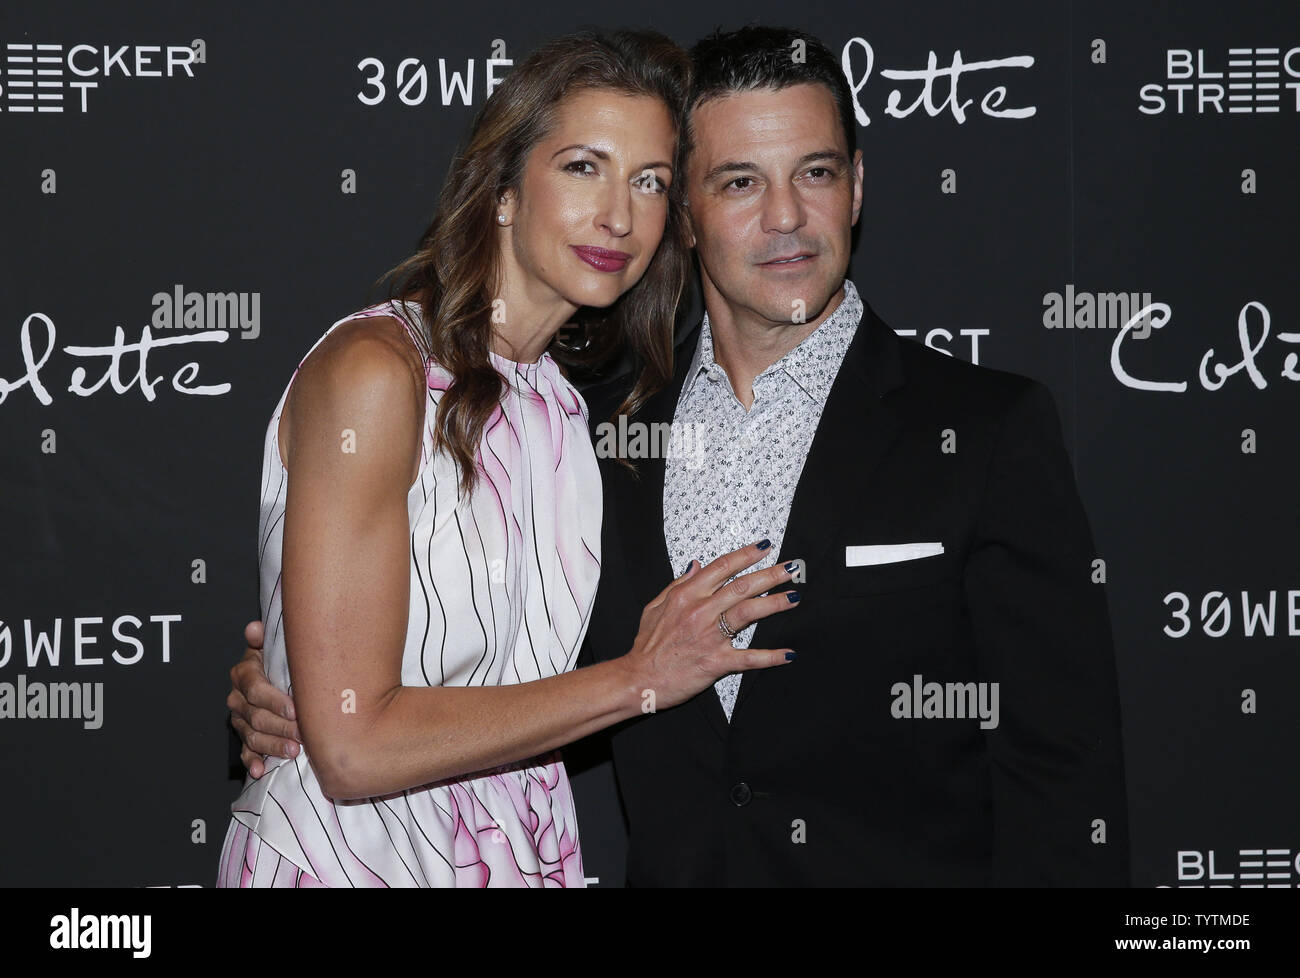 Alysia Reiner and David Alan Basche arrive on the red carpet at the New York screening of 'Colette' at Museum of Modern Art on September 13, 2018 in New York City.     Photo by John Angelillo/UPI - Stock Image